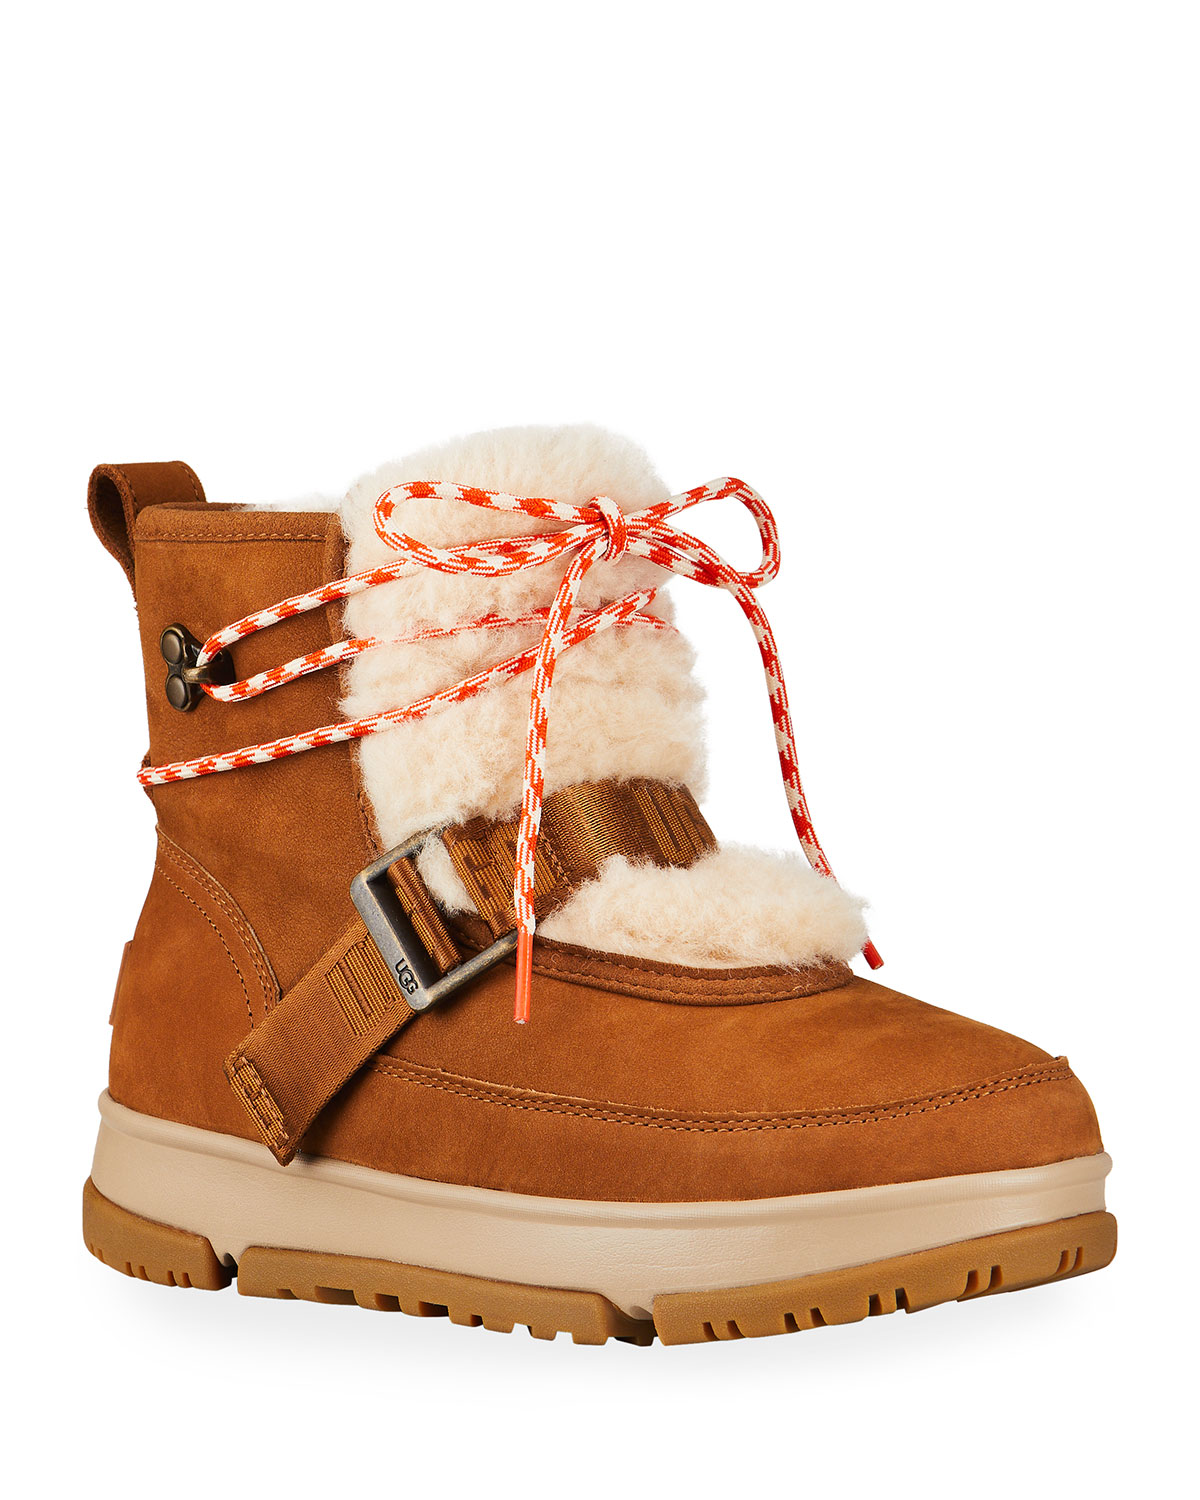 Classic Weather Waterproof Leather Hiker Boots w/ Faux-Fur Trim